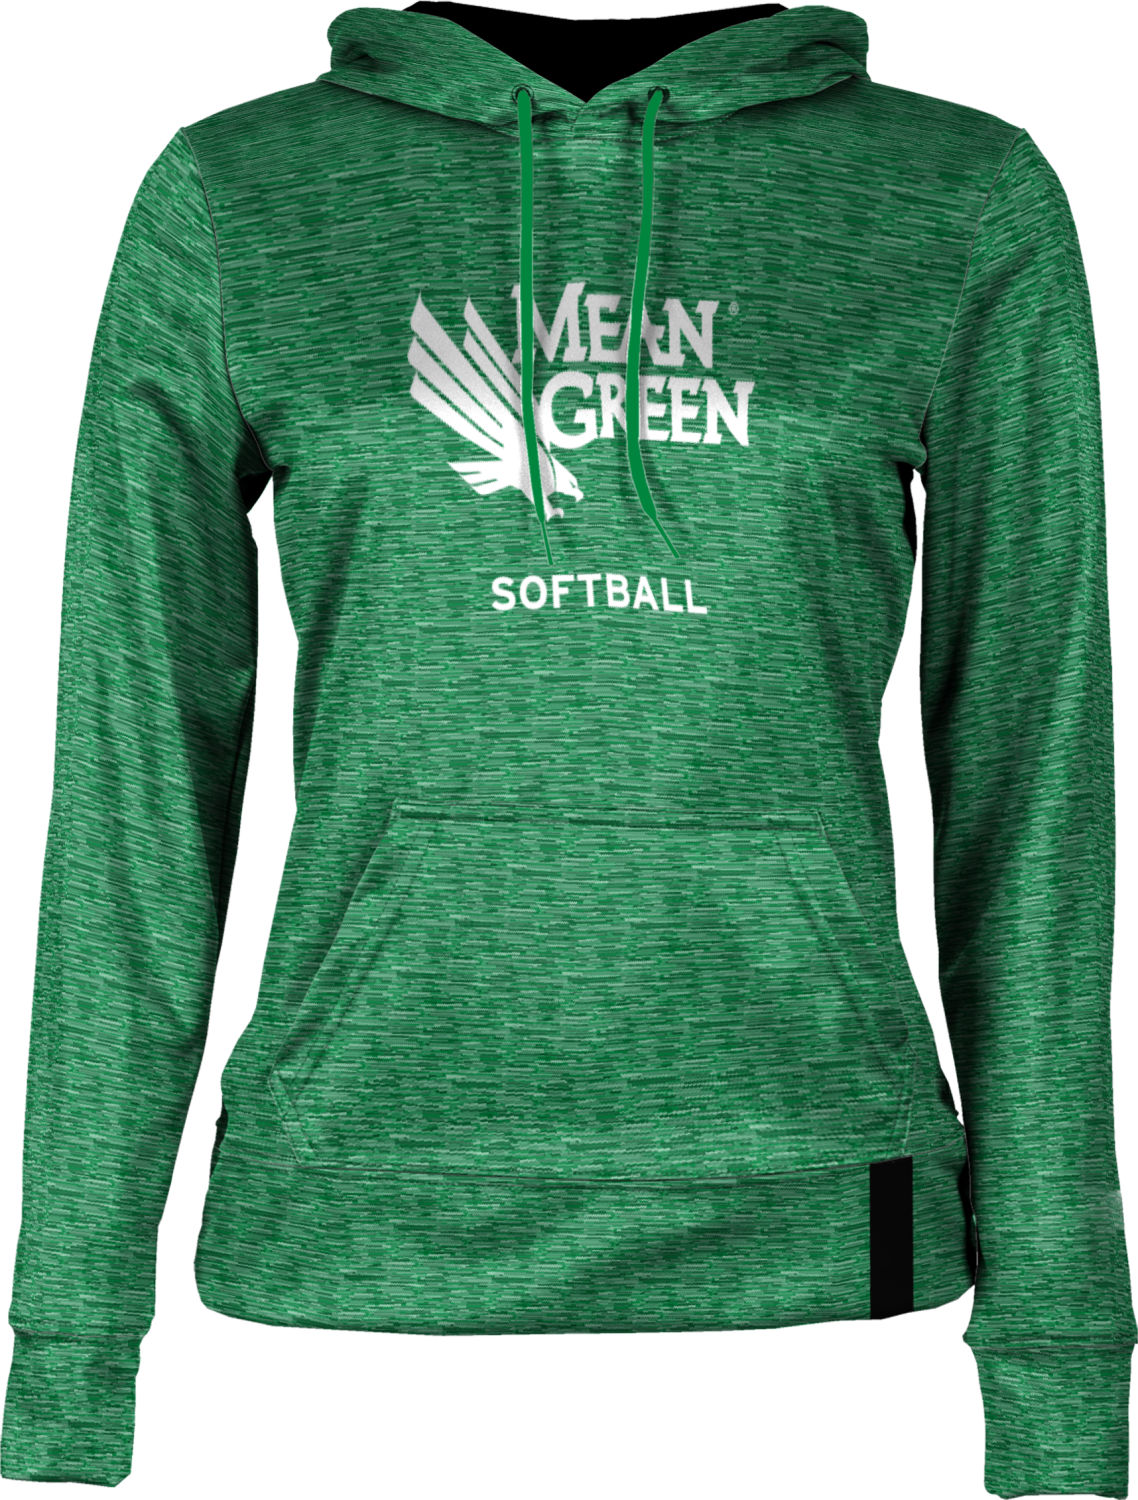 ProSphere Softball Women's Pullover Hoodie